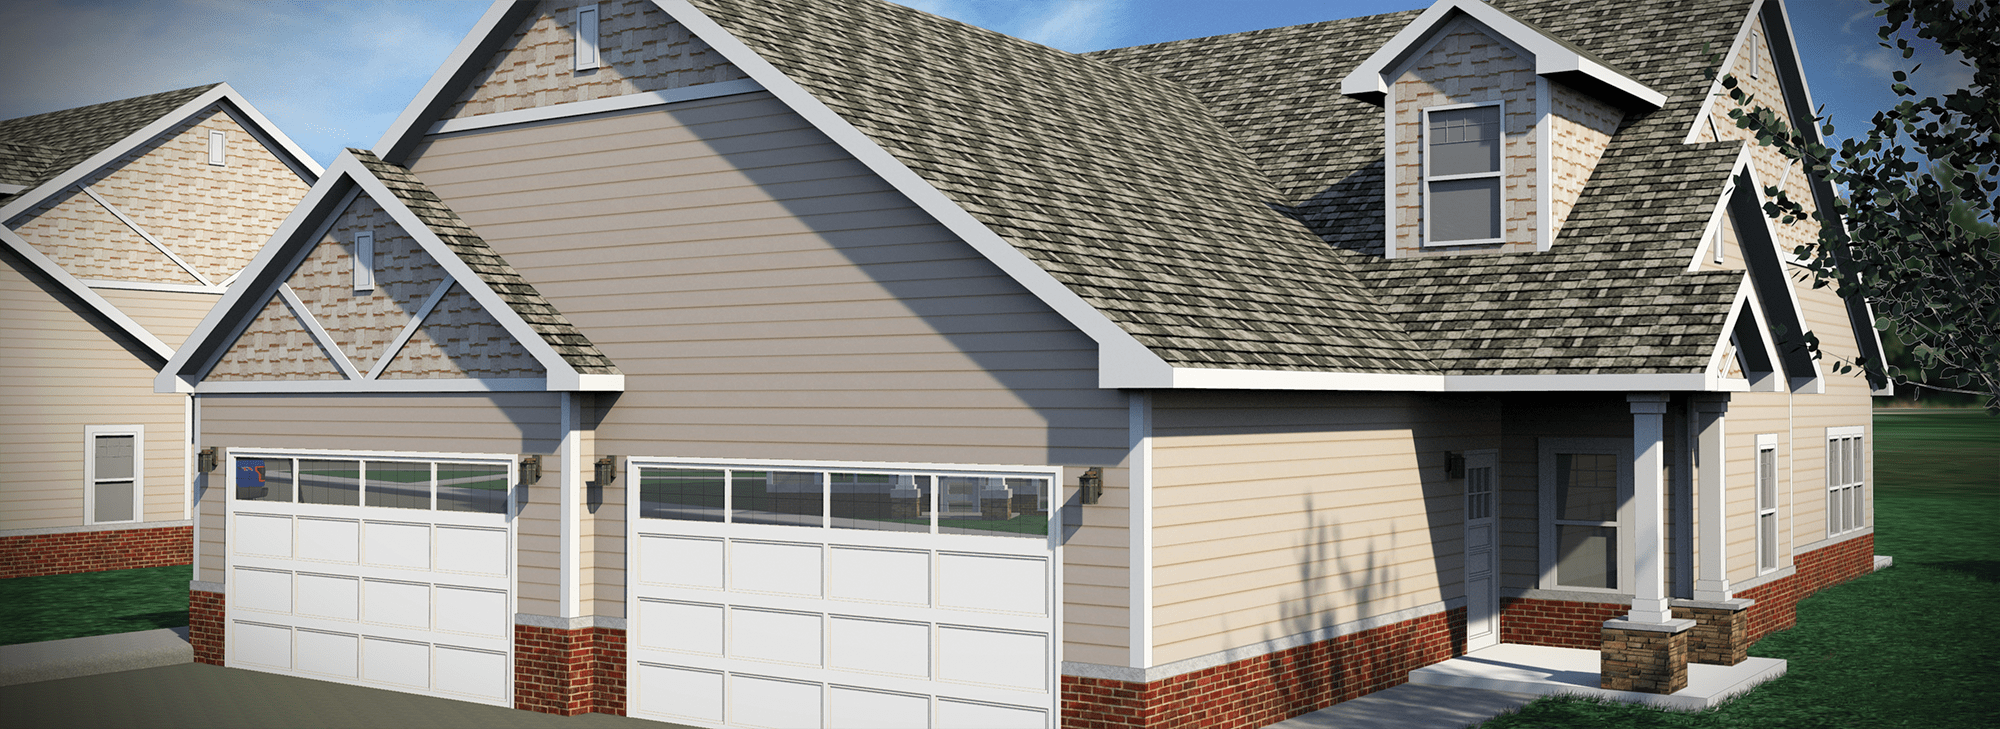 The Arbor Duplex Rendering